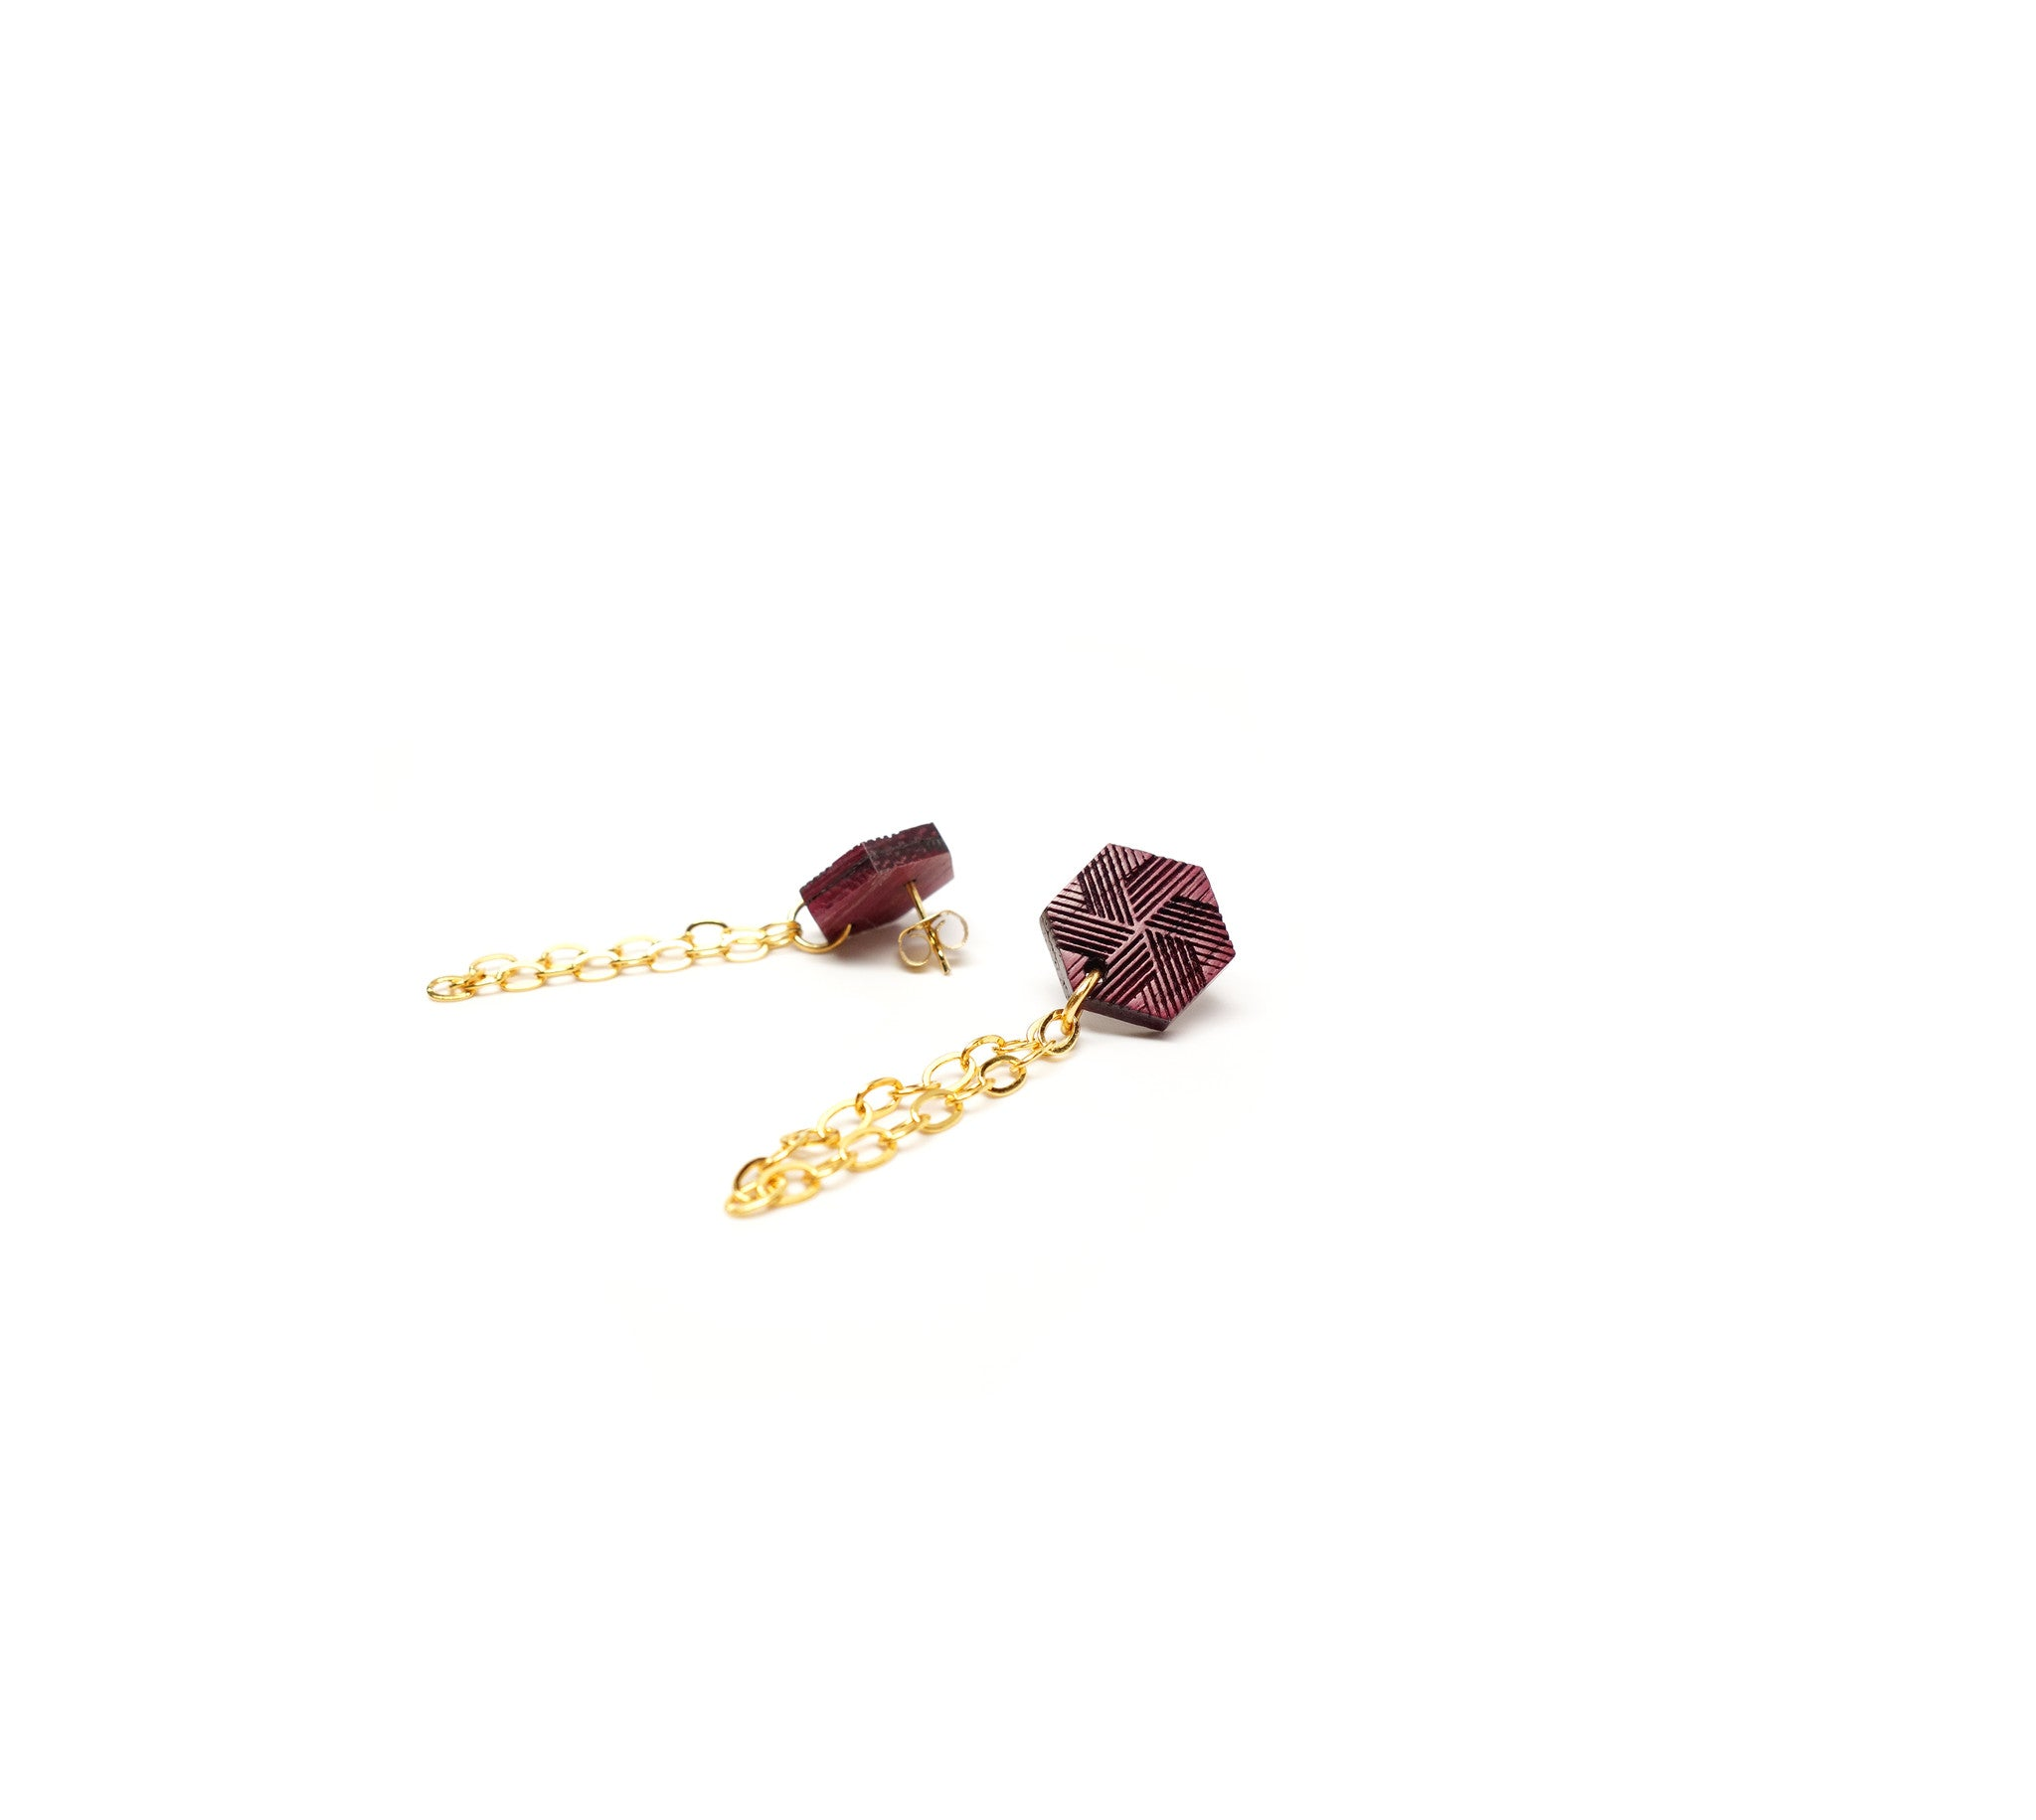 Hexagon & chain post earring - WENWEN designs